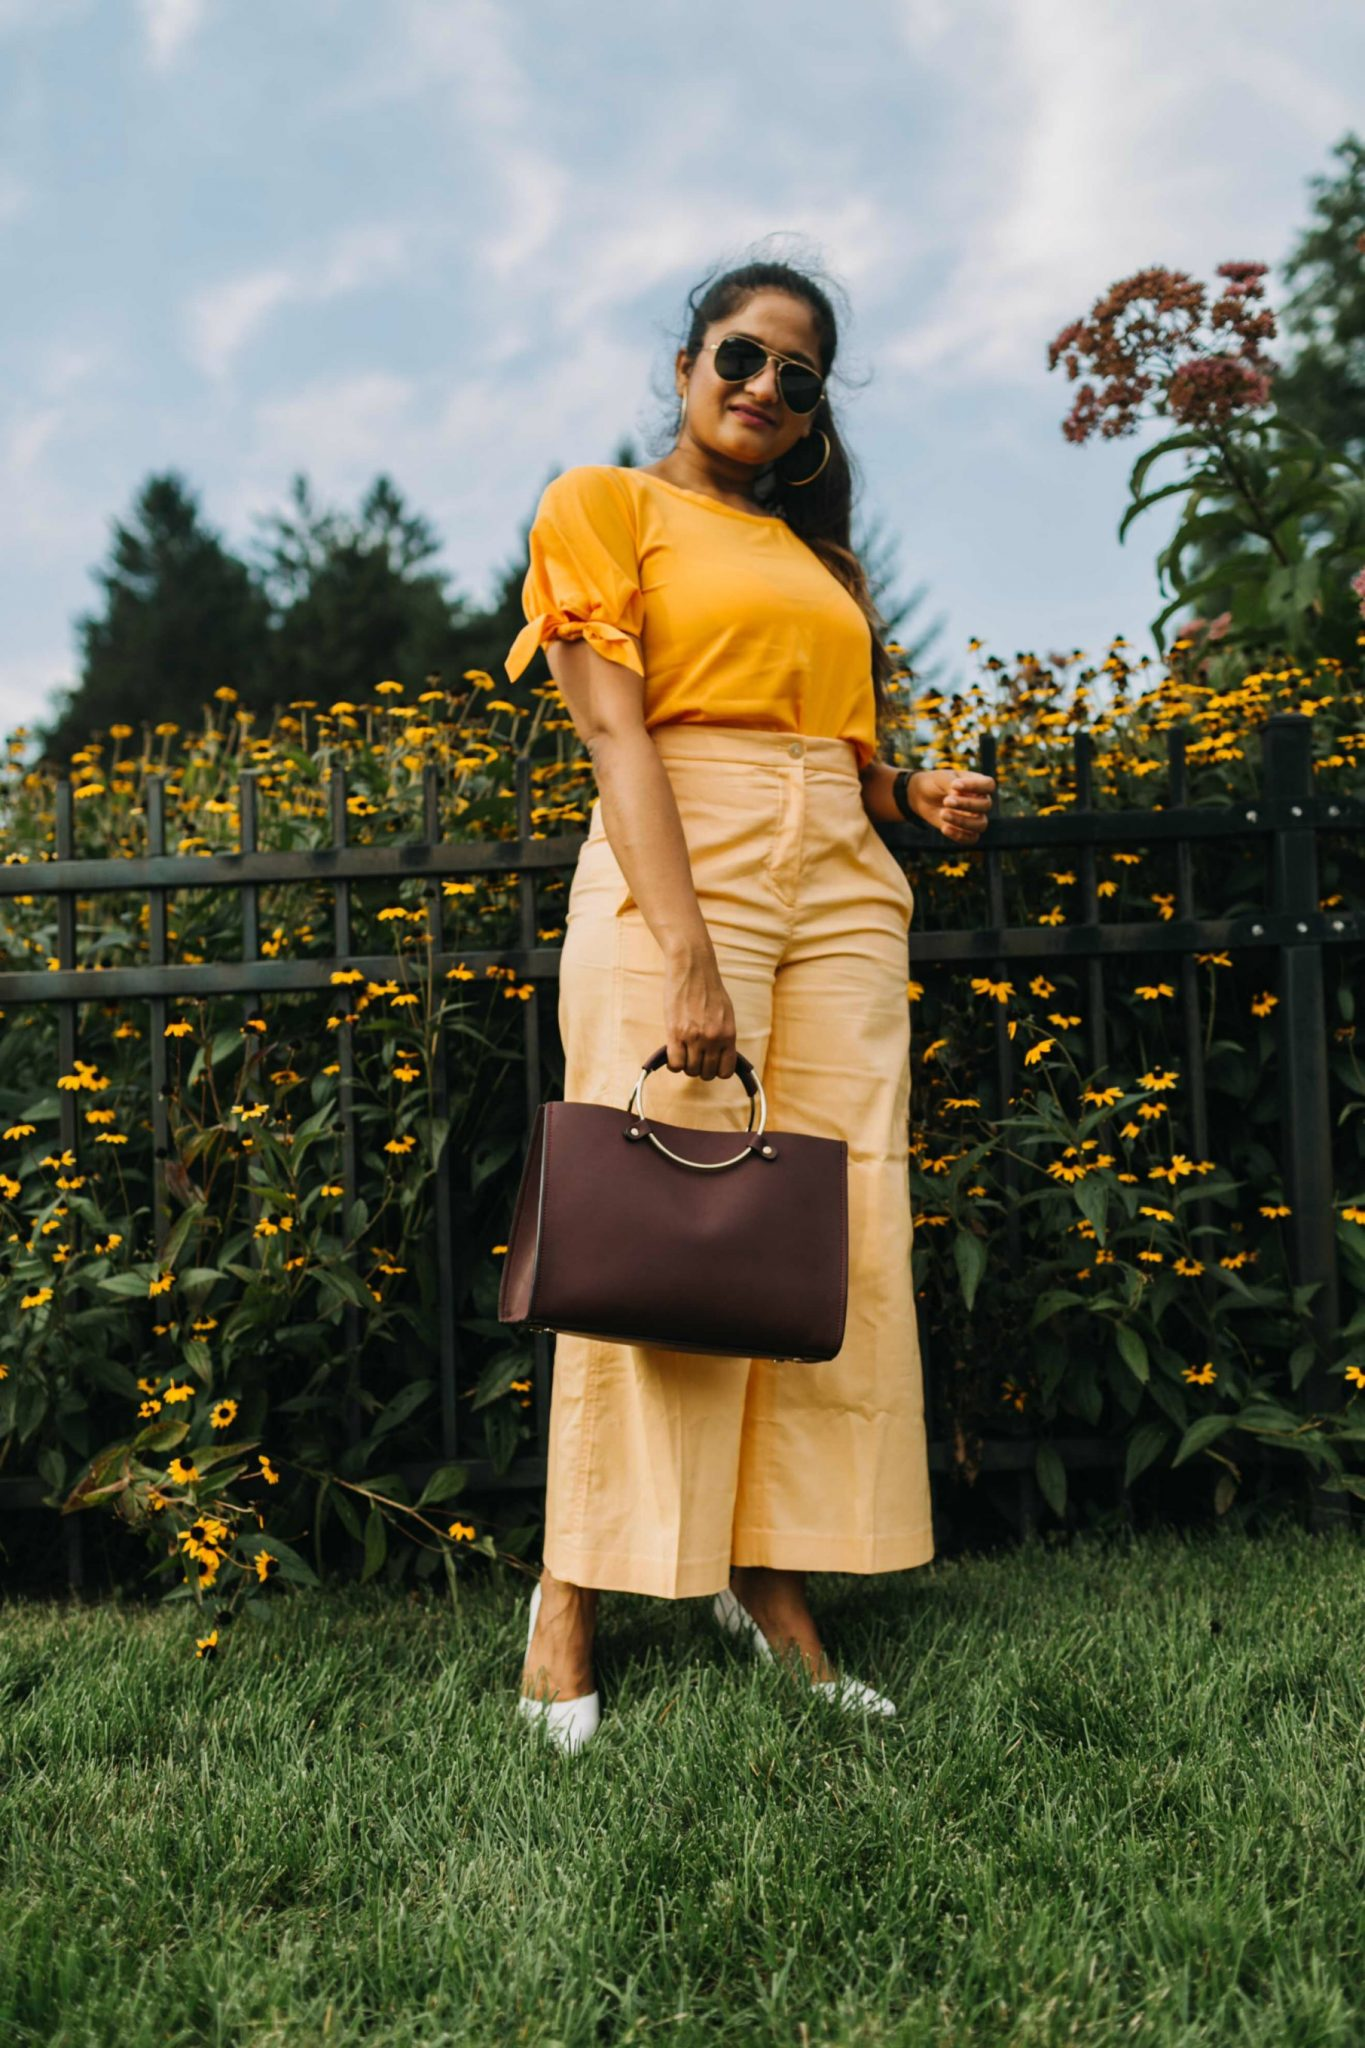 Orange and burgundy outfit | wearing Ann Taylor Marina wide leg pant | Orange Monochrome Outfit from the Ann Taylor Sale featured by popular US modest fashion blogger, Dreaming Loud